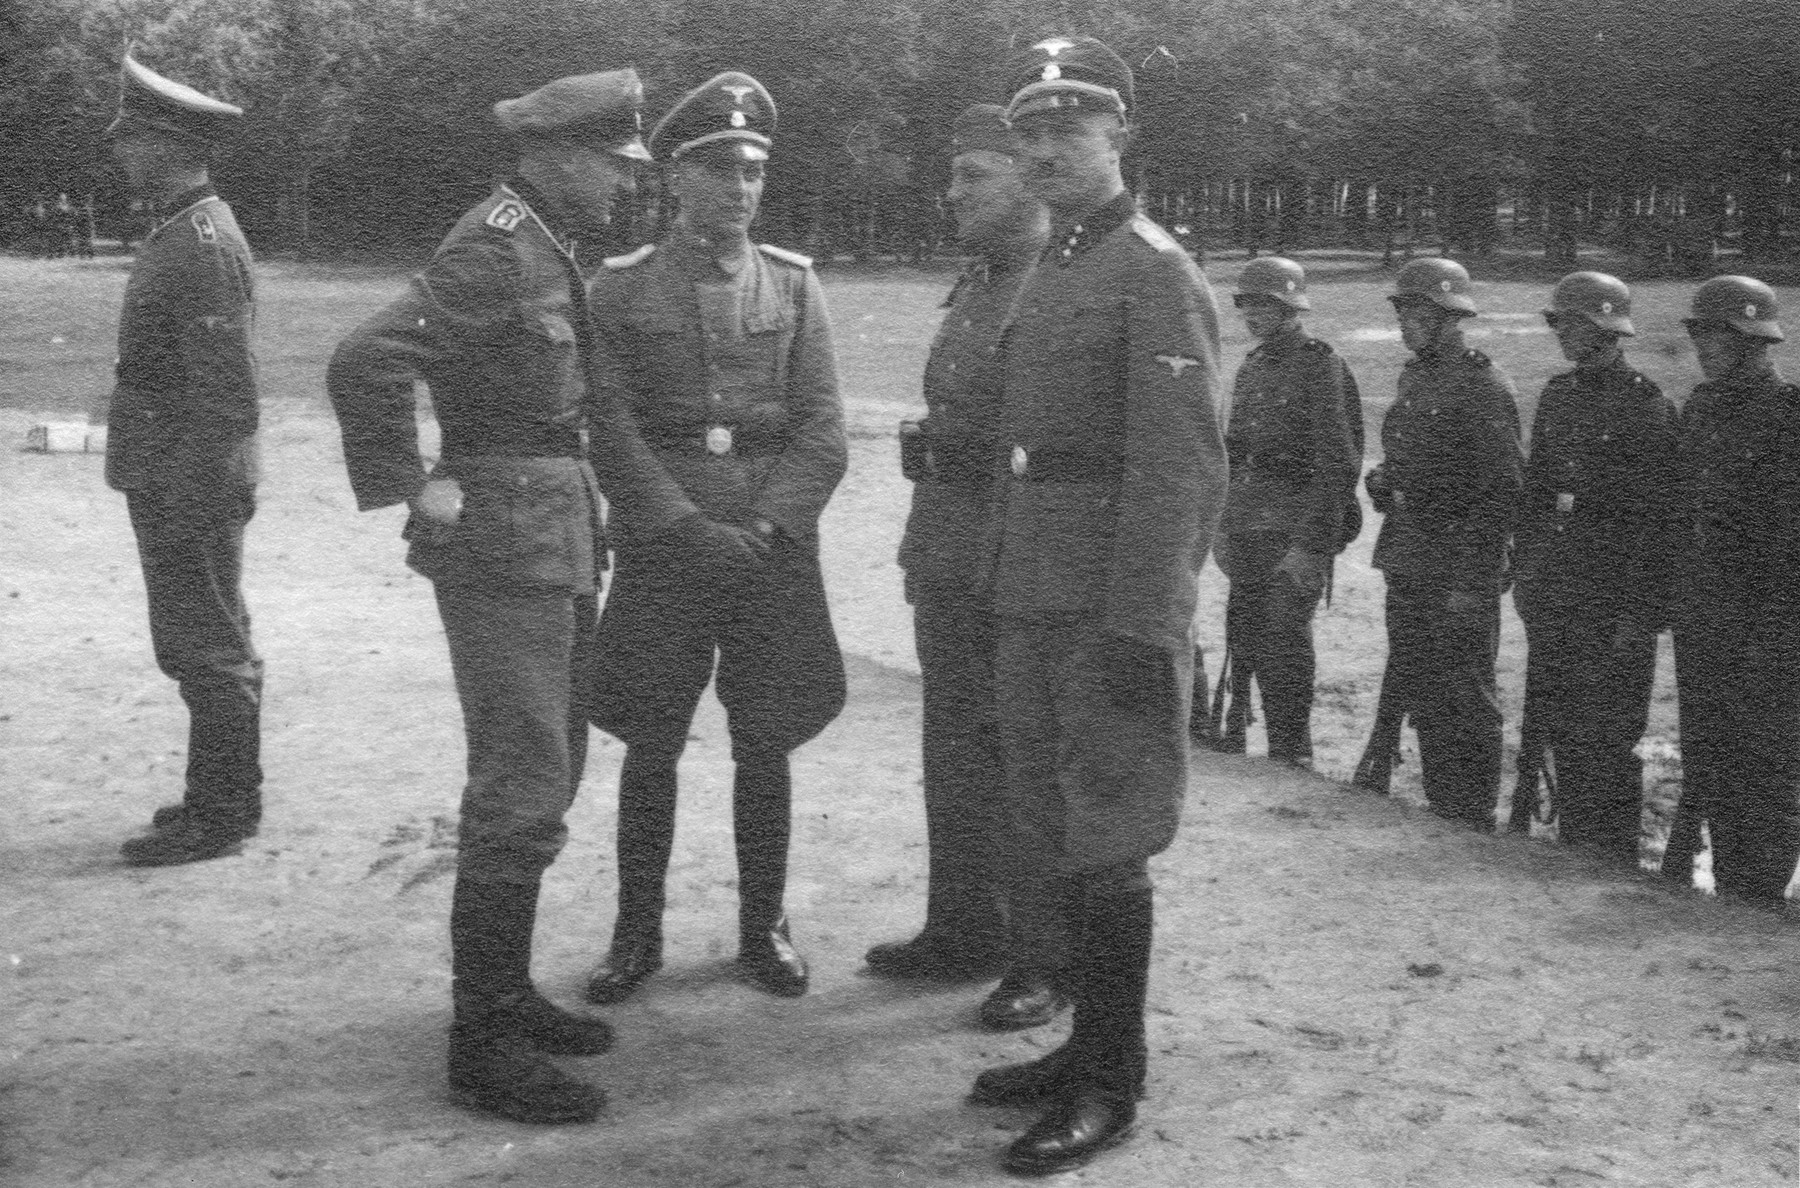 Members of the Waffen-SS in occupied Poland.